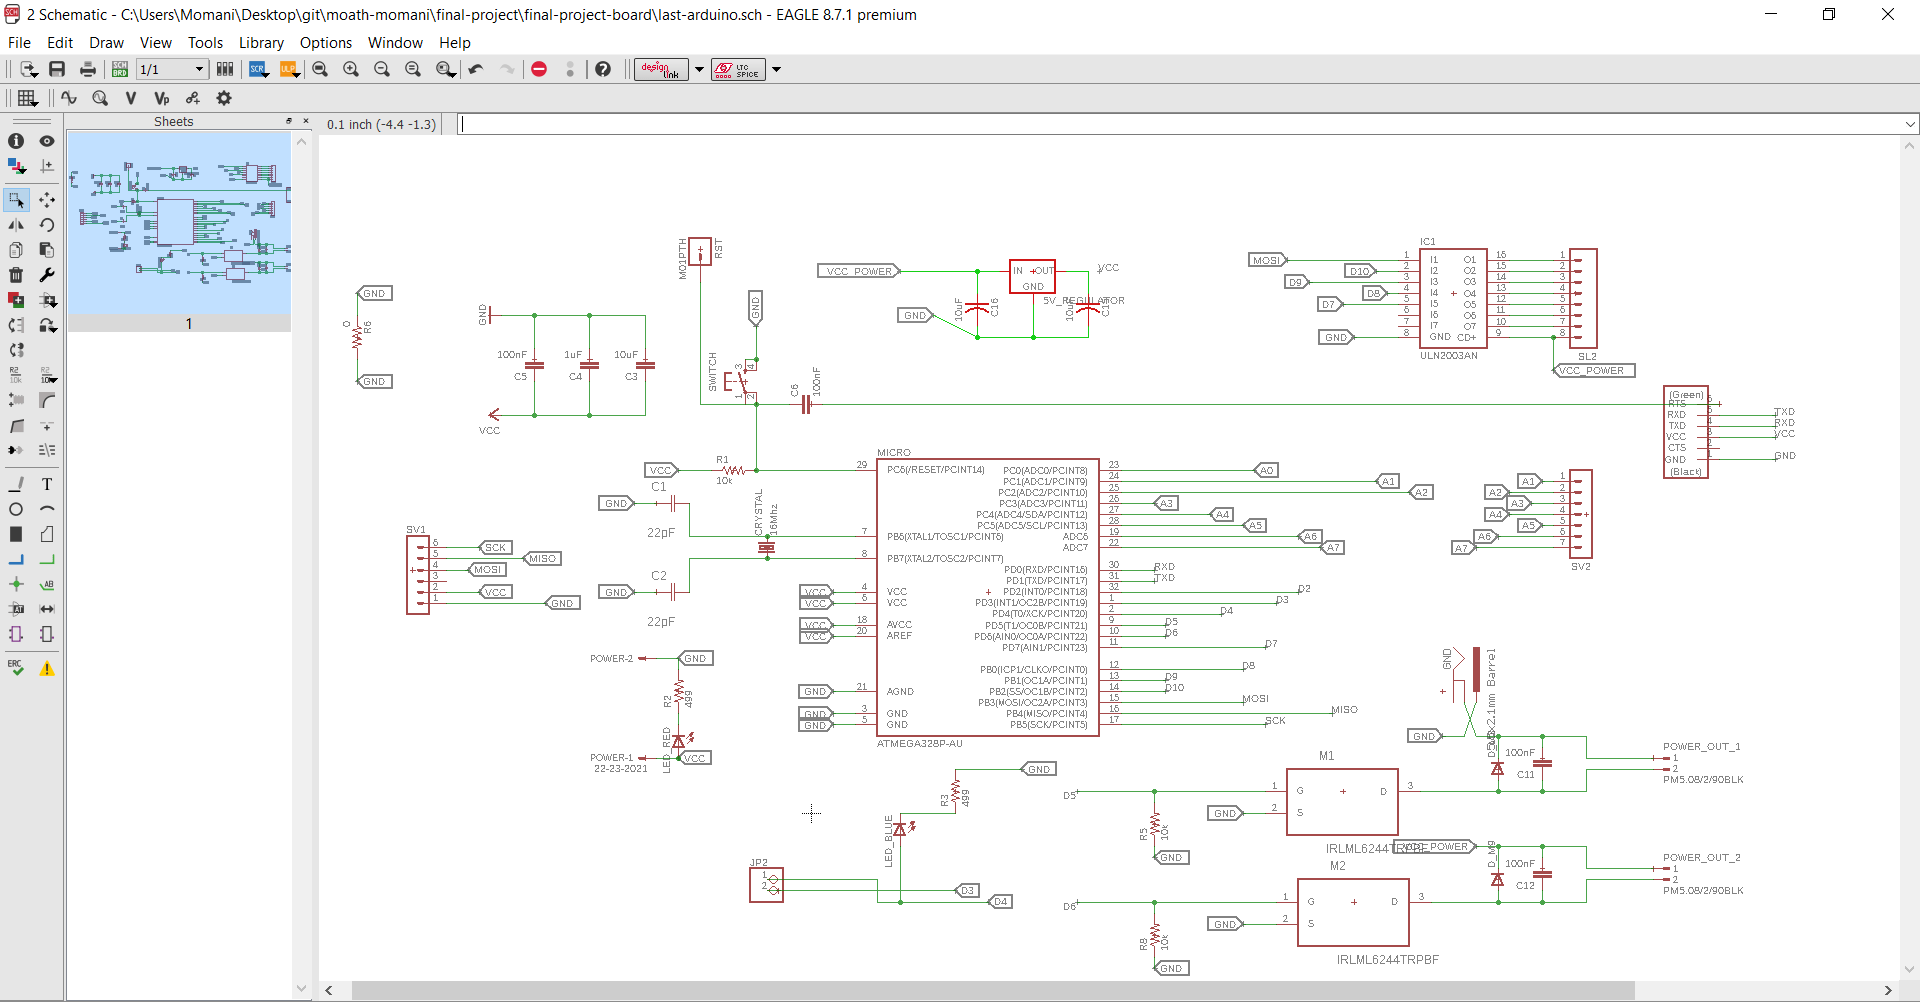 hight resolution of also in this schematic i have designec a voltage regulator circuit outputs 5 volts to feed the microcontroller atmega 328p